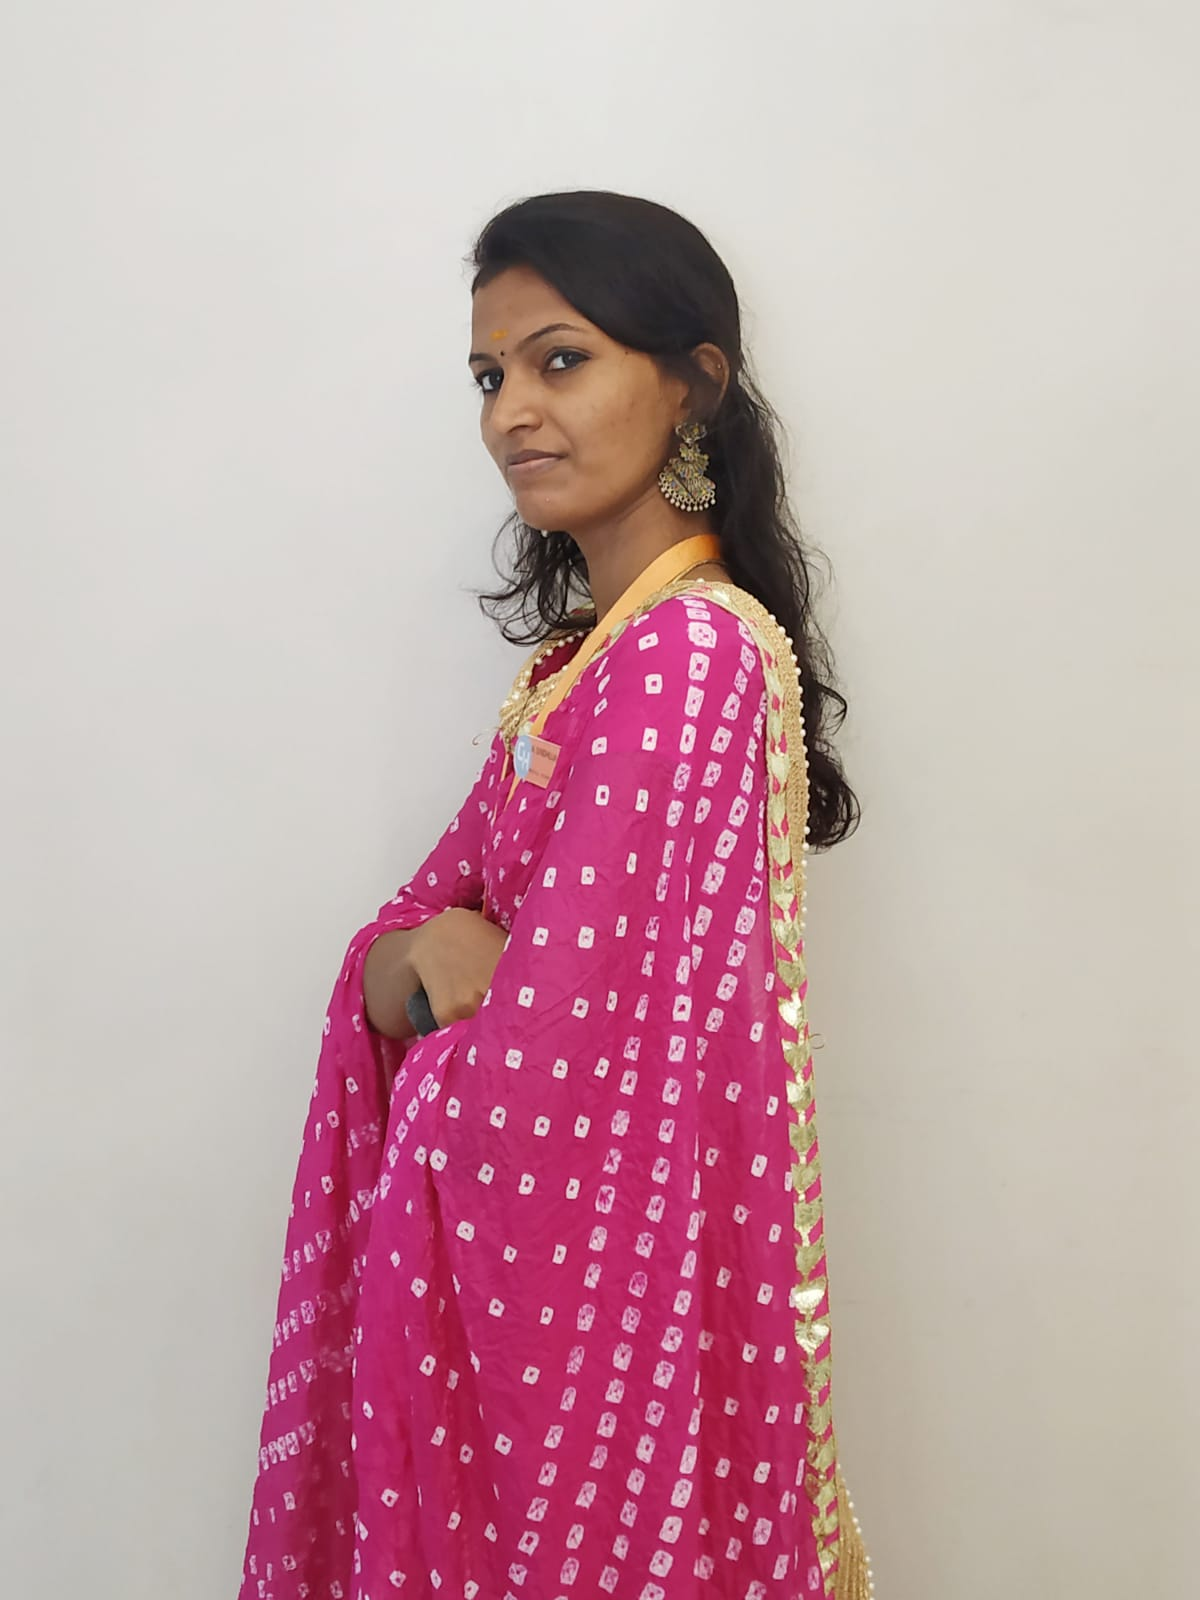 Female accounting staff wearing a pink saree